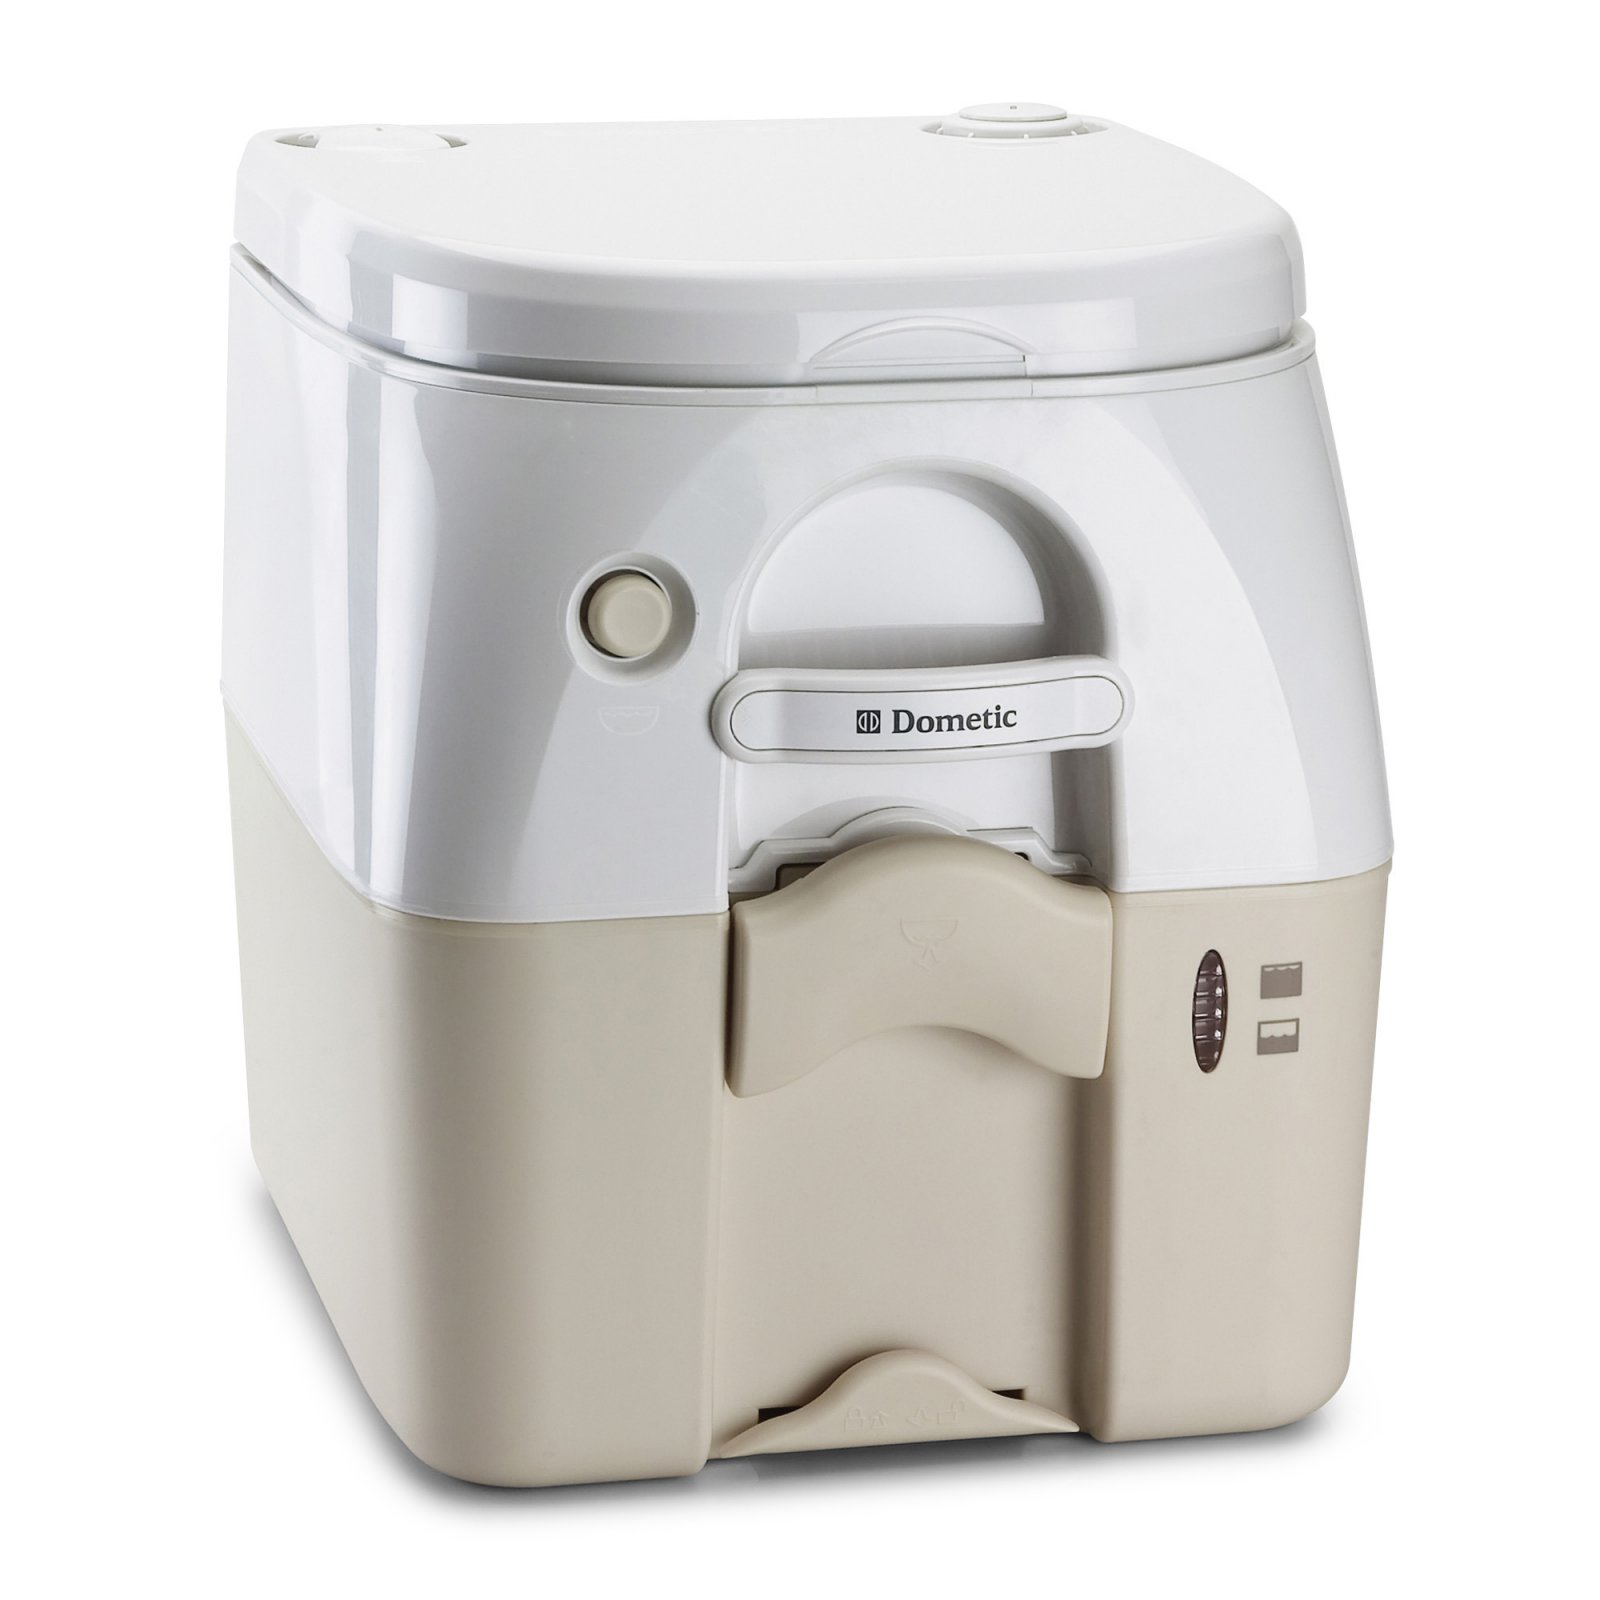 Dometic 976 Portable Toilet 5 Gallon by Dometic